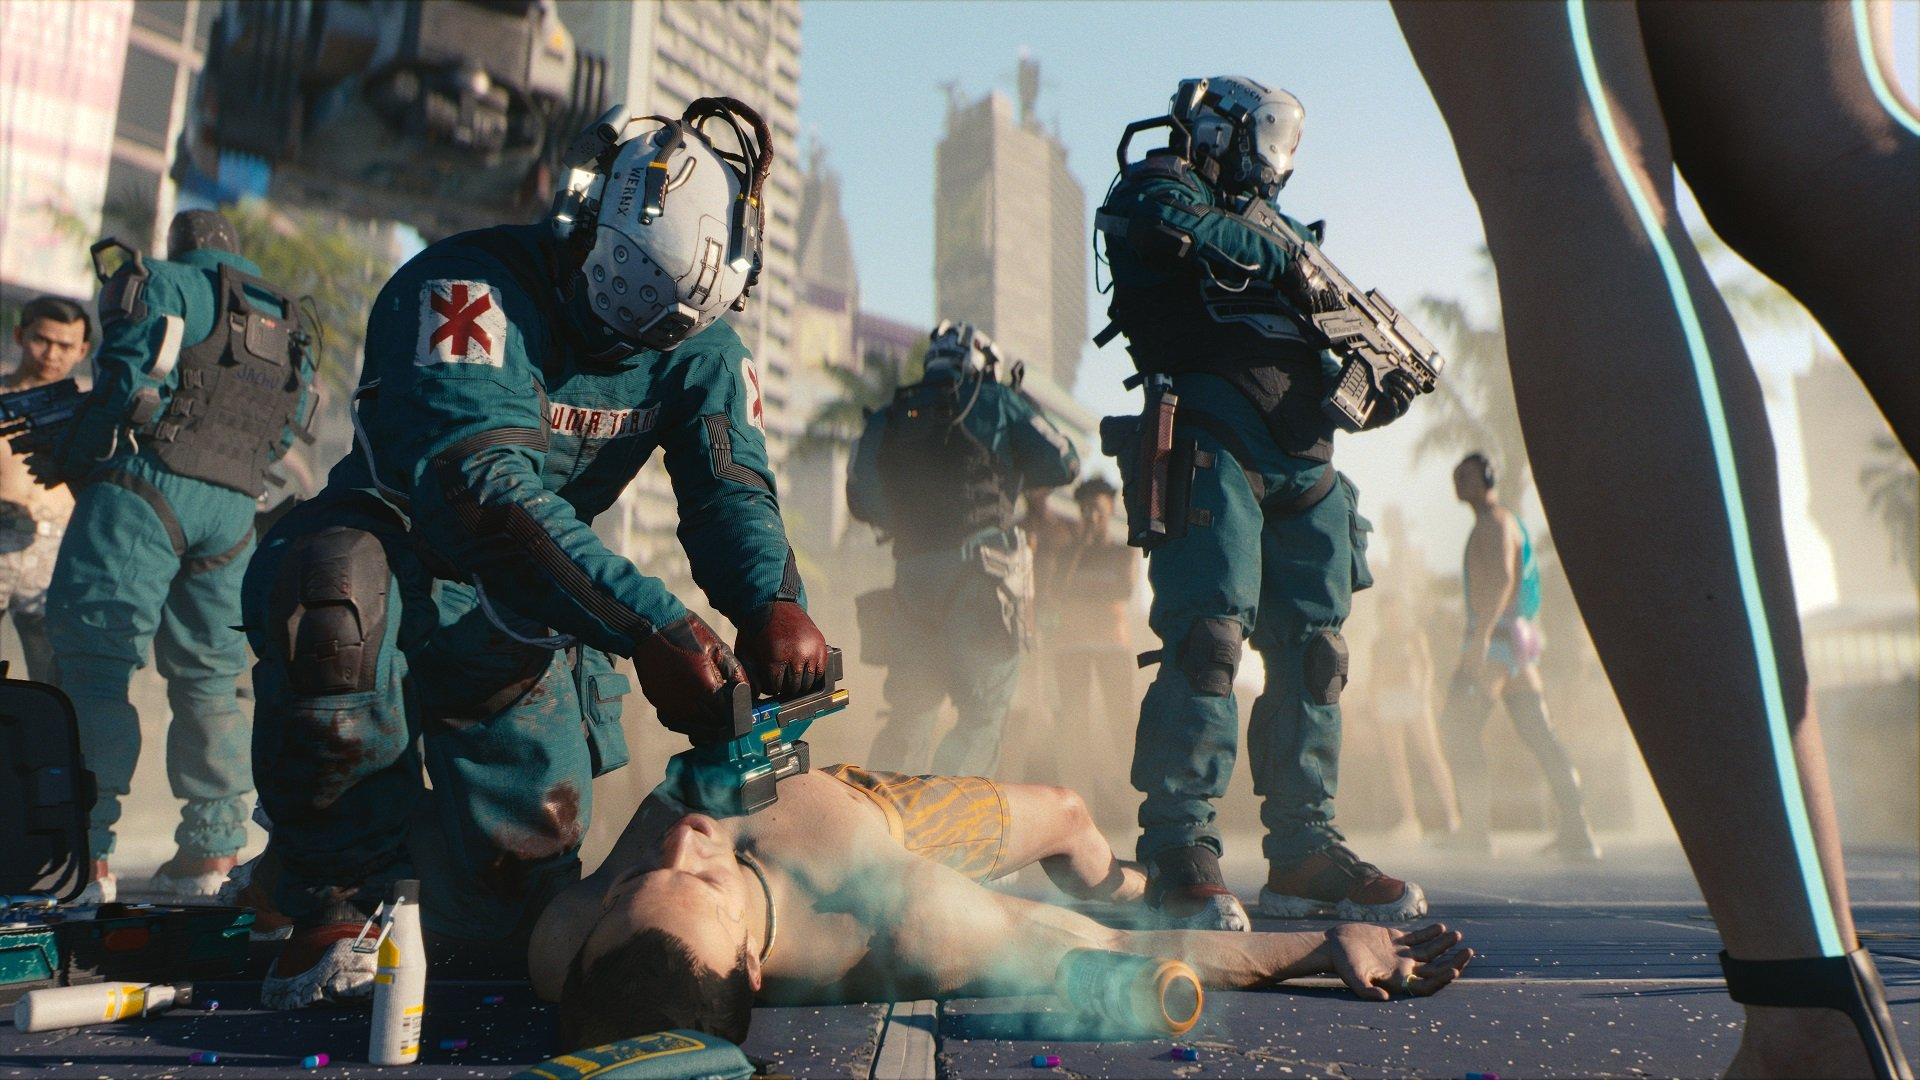 CD Projekt Red and Warner Bros. team up again, this time for Cyberpunk 2077 screenshot